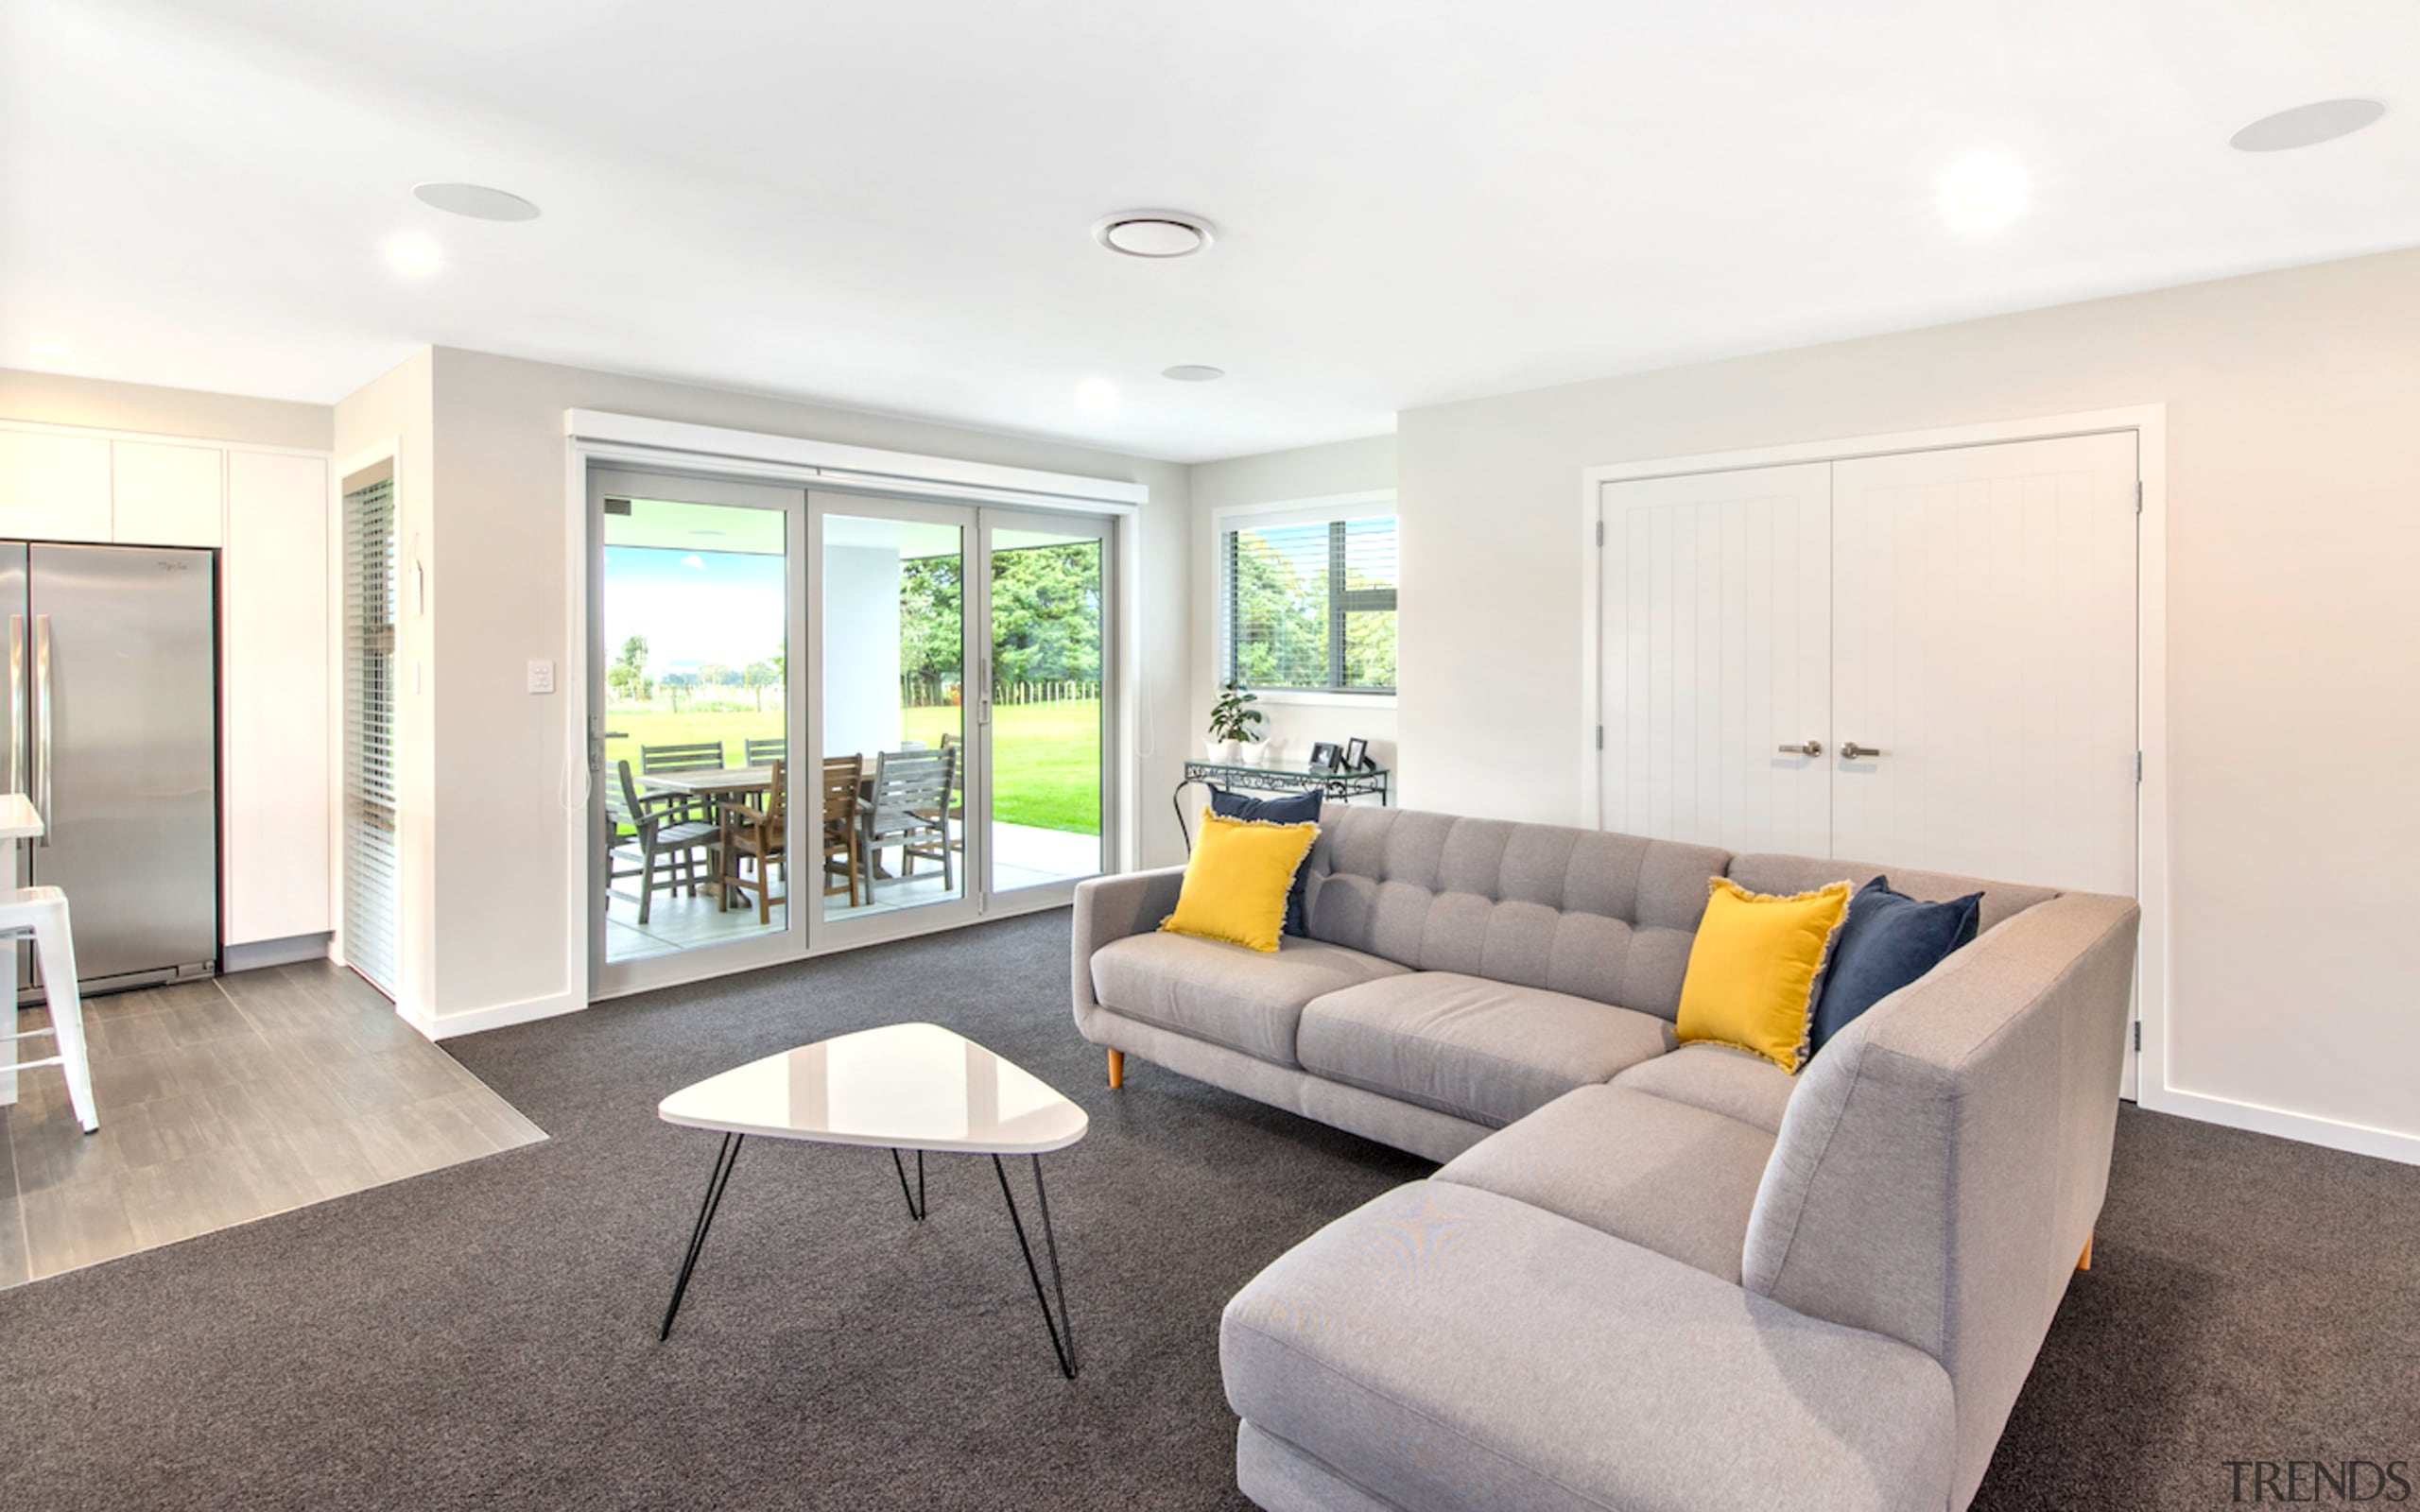 Award-winning home offers intelligent layouts and refined finishes house, interior design, living room, property, real estate, room, window, white